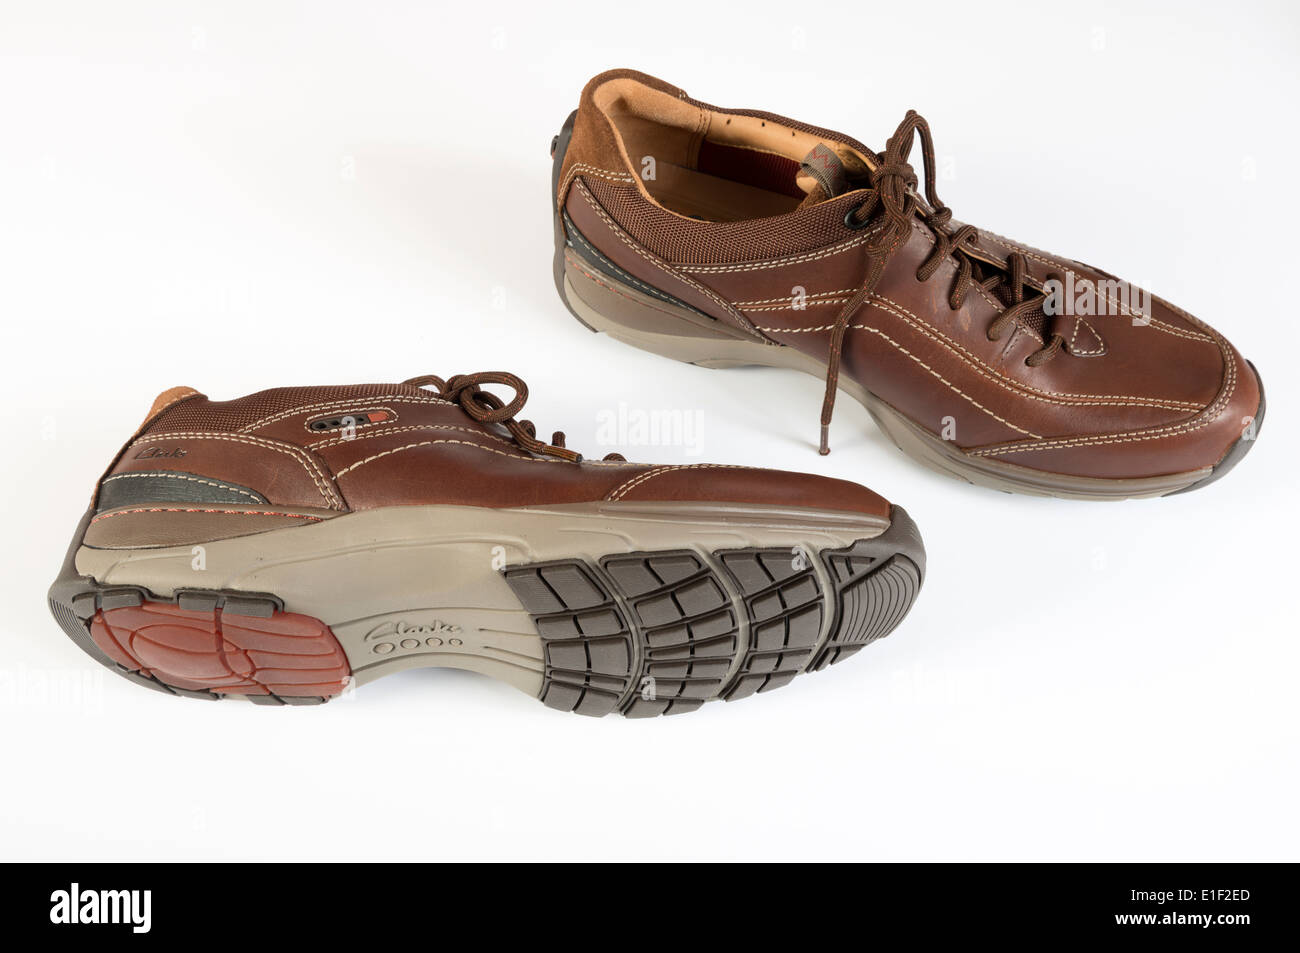 Clarks active air vent shoes with air-pump fitted into the heels - Stock Image